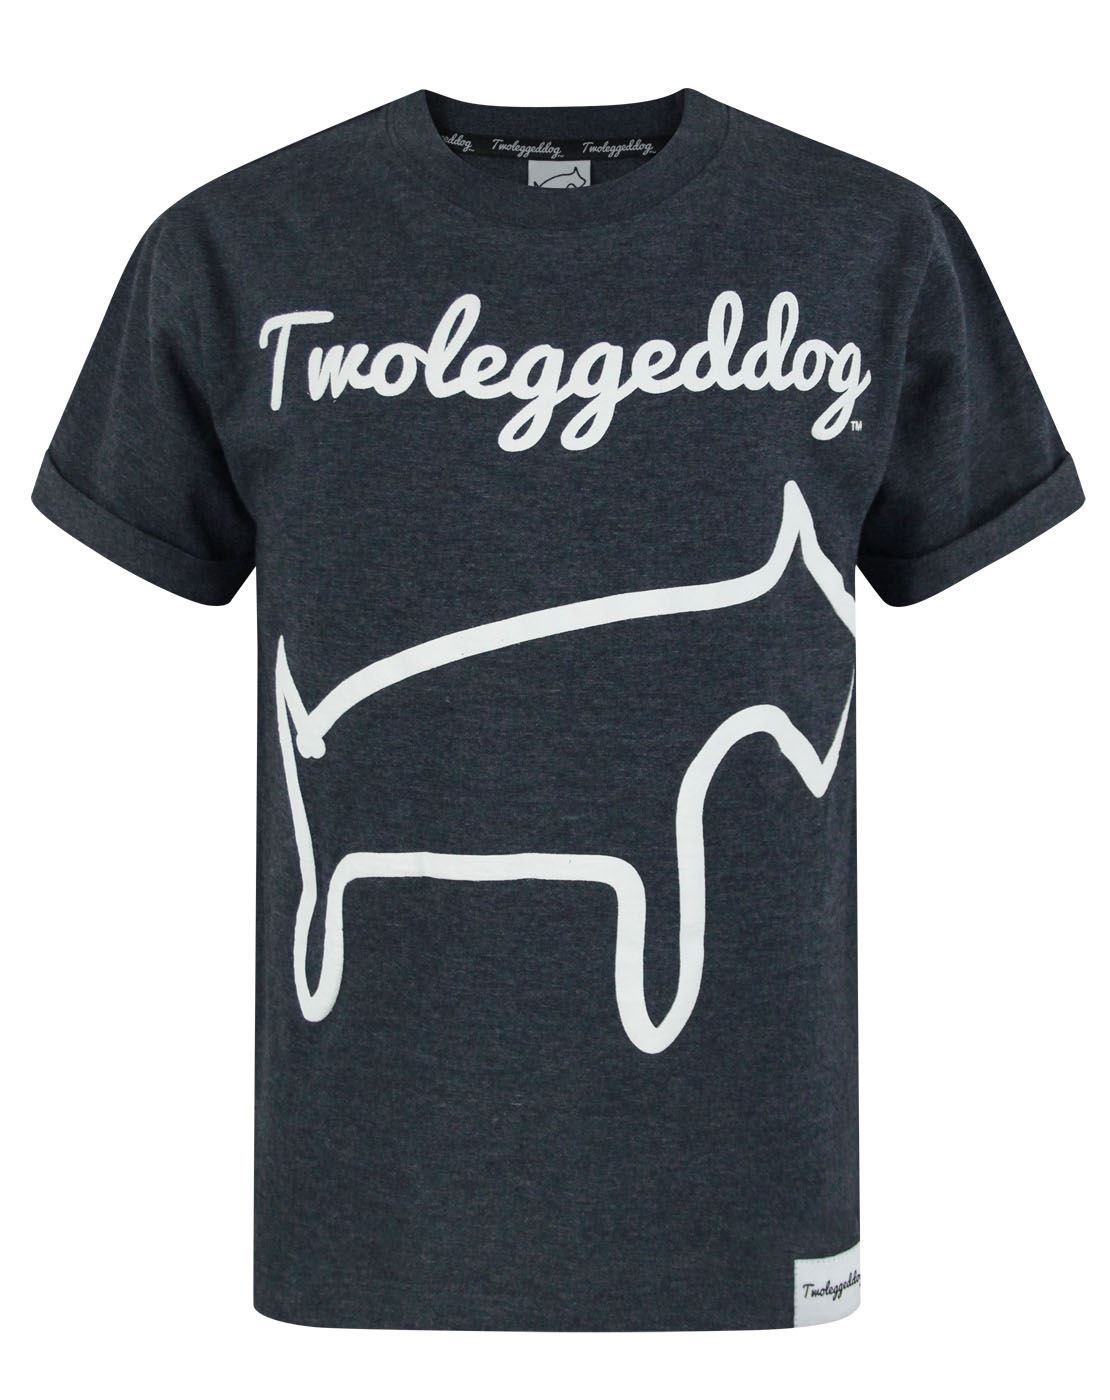 Two Legged Dog Puff Print Boy's T-Shirt